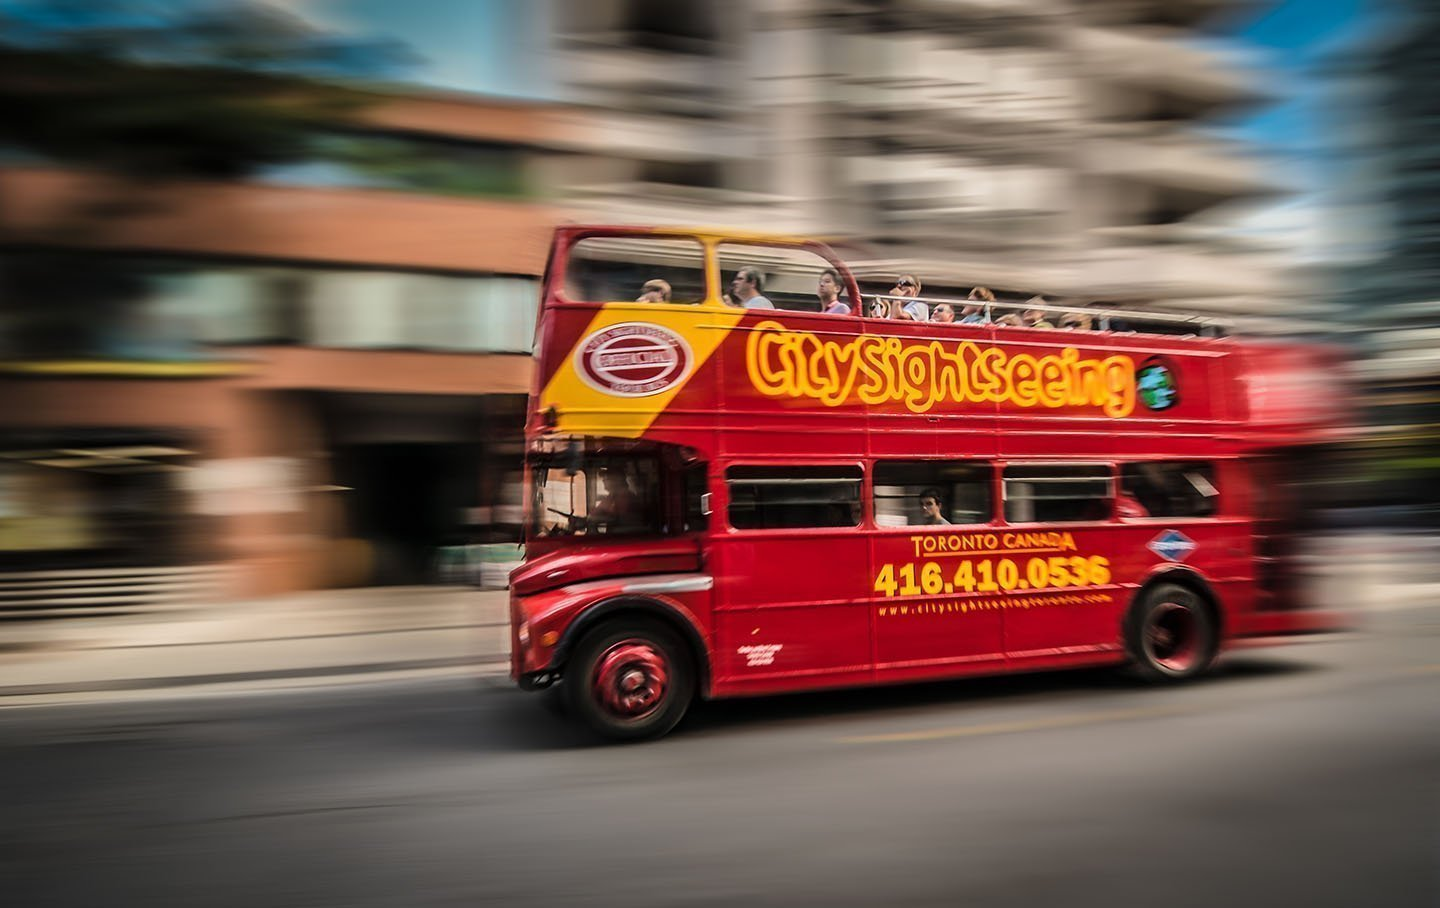 Image of Hop-on Hop-off sightseeing bus